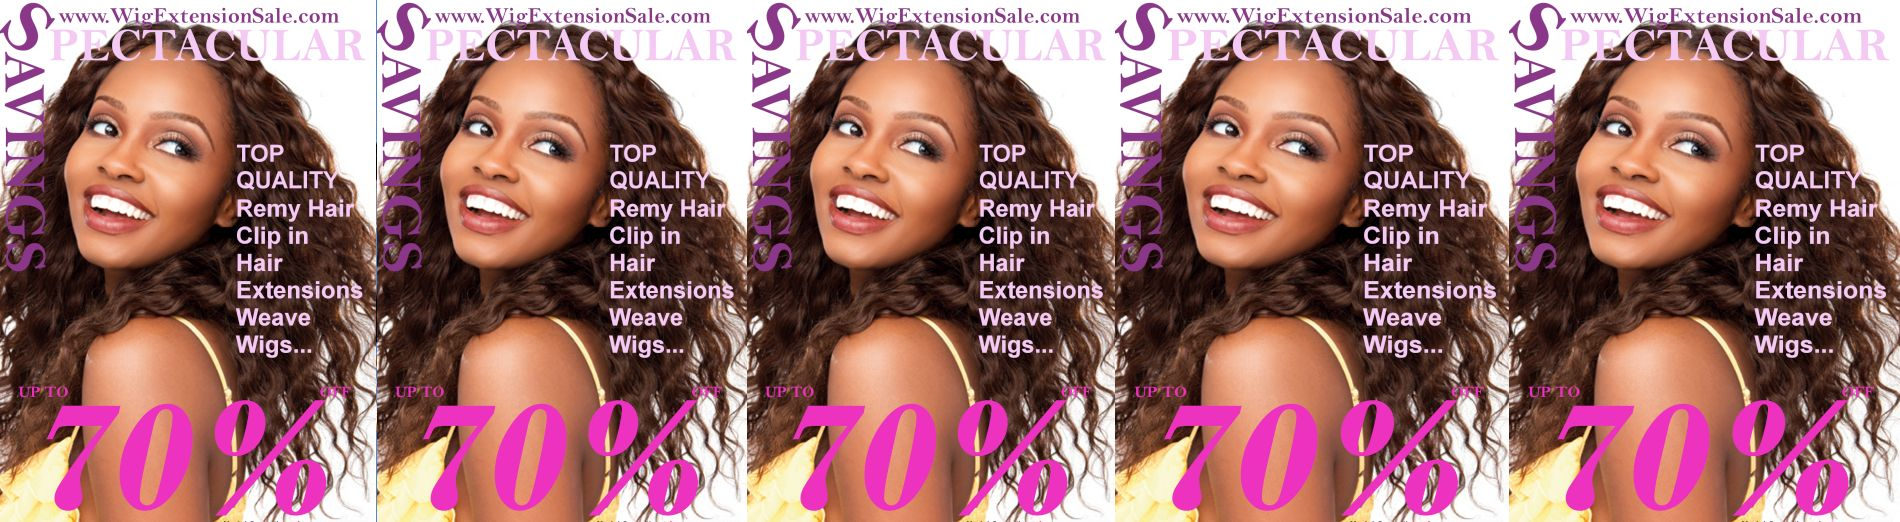 Wig Extension Sale Sell Human Hair Weaves Hair Extensions Wigs